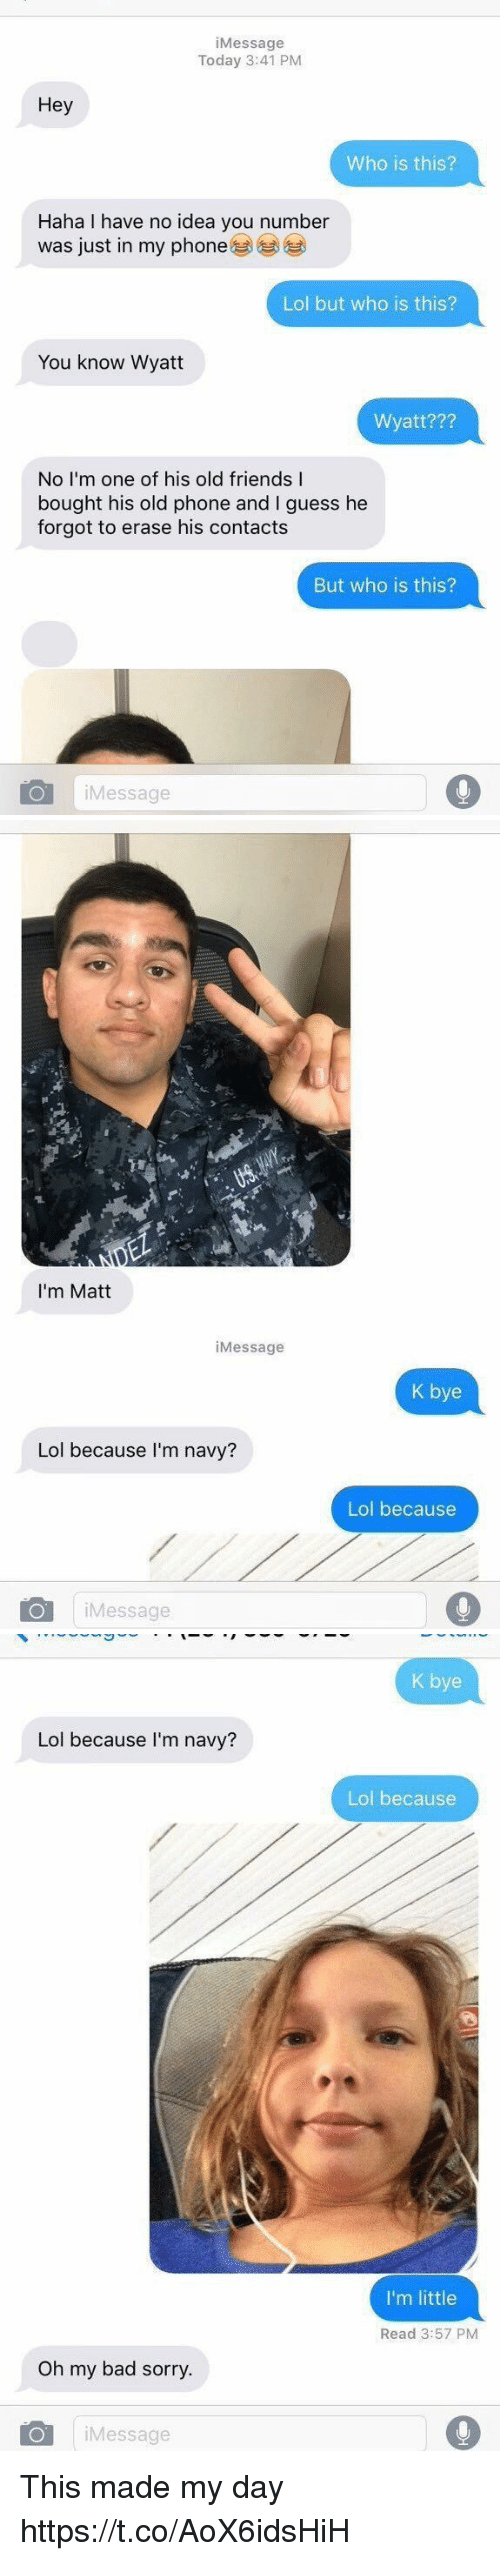 Bad, Friends, and Lol: iMessage  Today 3:41 PM  Hey  Who is this?  Haha I have no idea you number  was just in my phone  Lol but who is this?  You know Wyatt  Wyatt???  No I'm one of his old friends I  bought his old phone and I guess he  forgot to erase his contacts  But who is this?  iMessage   I'm Matt  iMessage  K bye  Lol because I'm navy?  Lol because  iMessage   K bye  Lol because I'm navy?  Lol because  I'm little  Read 3:57 PM  Oh my bad sorry.  iMessage This made my day https://t.co/AoX6idsHiH